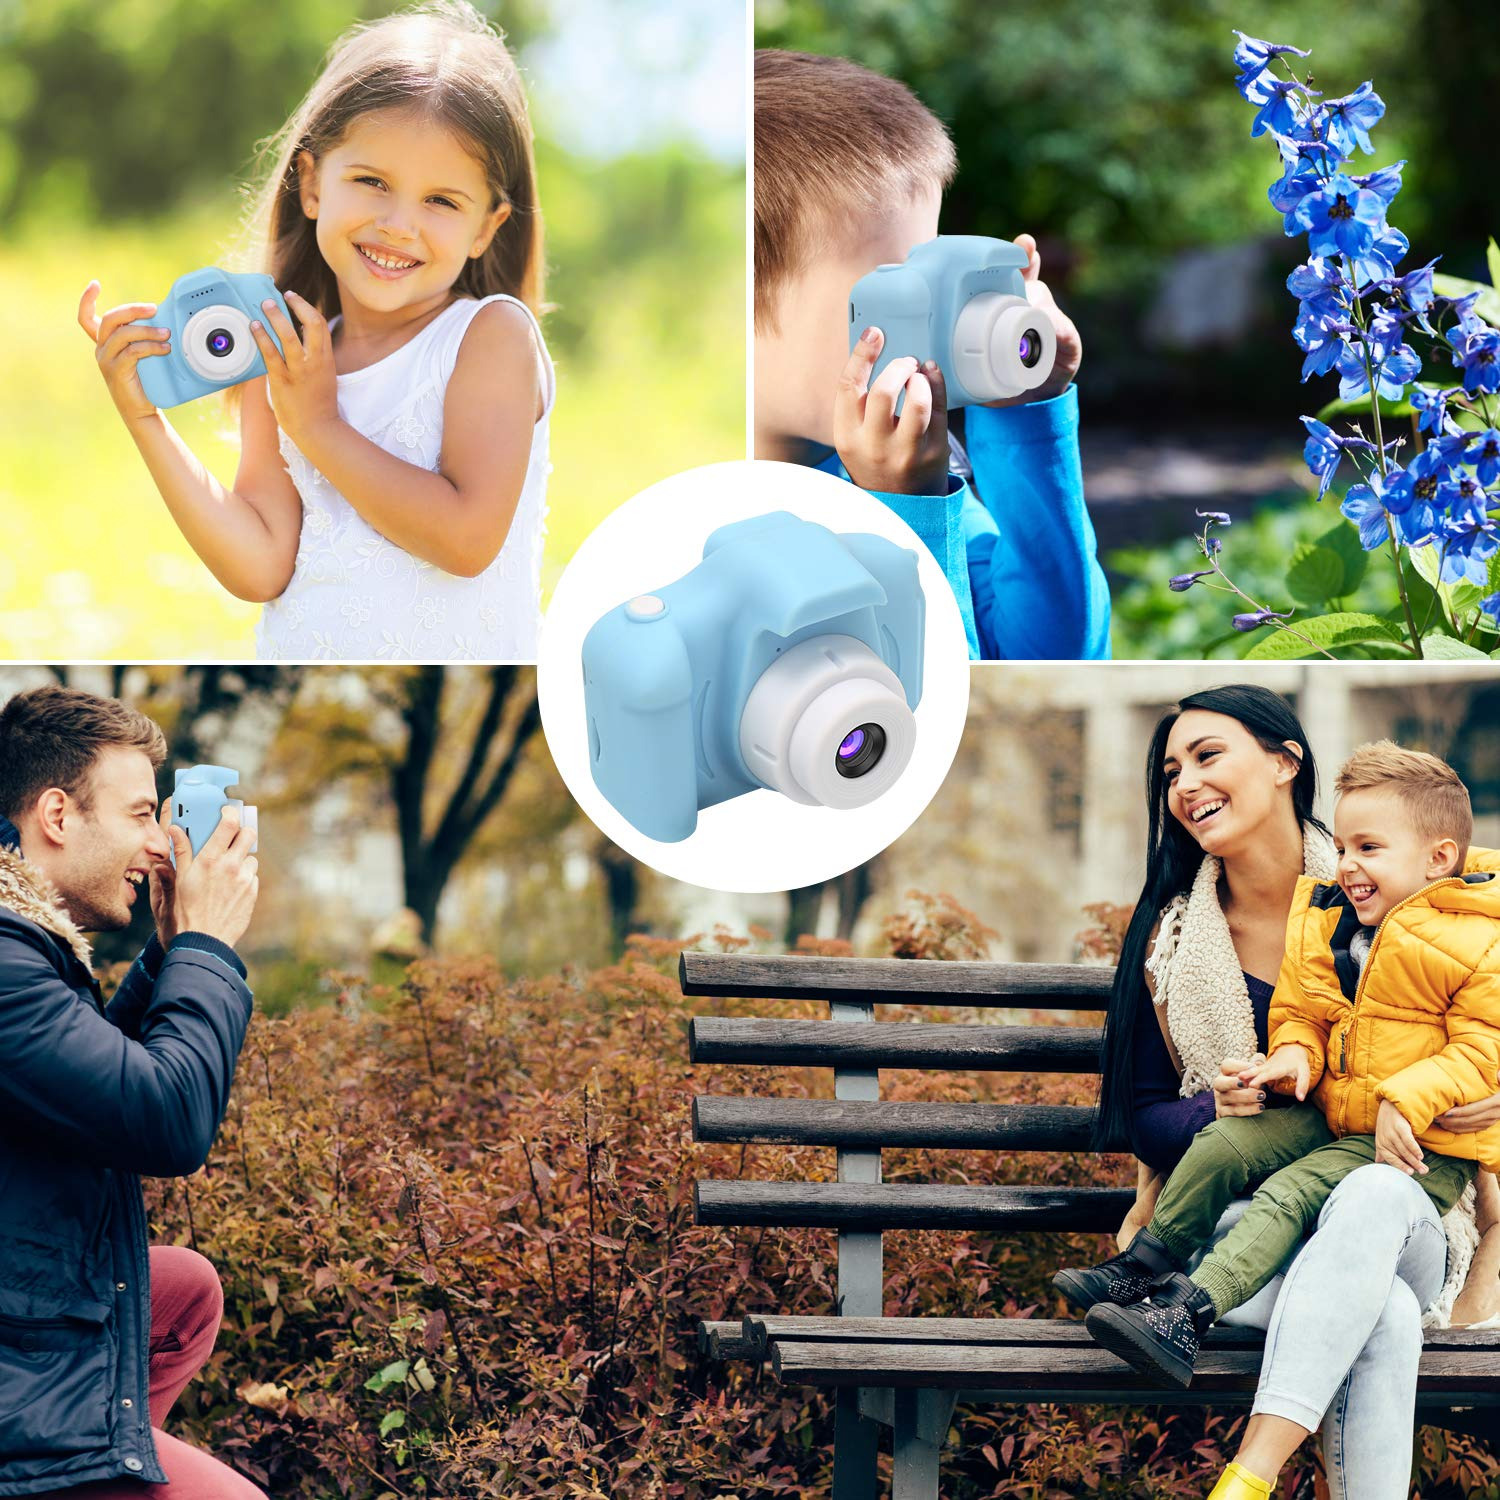 DDGG Kids Digital Camera Toy Camera HD Kids Video Cameras Shockproof Cameras with Soft Silicone Shell Gift for 4-10 Years Old Girls Boys Party Outdoor Play (16G SD Card Included) by DDGG (Image #8)